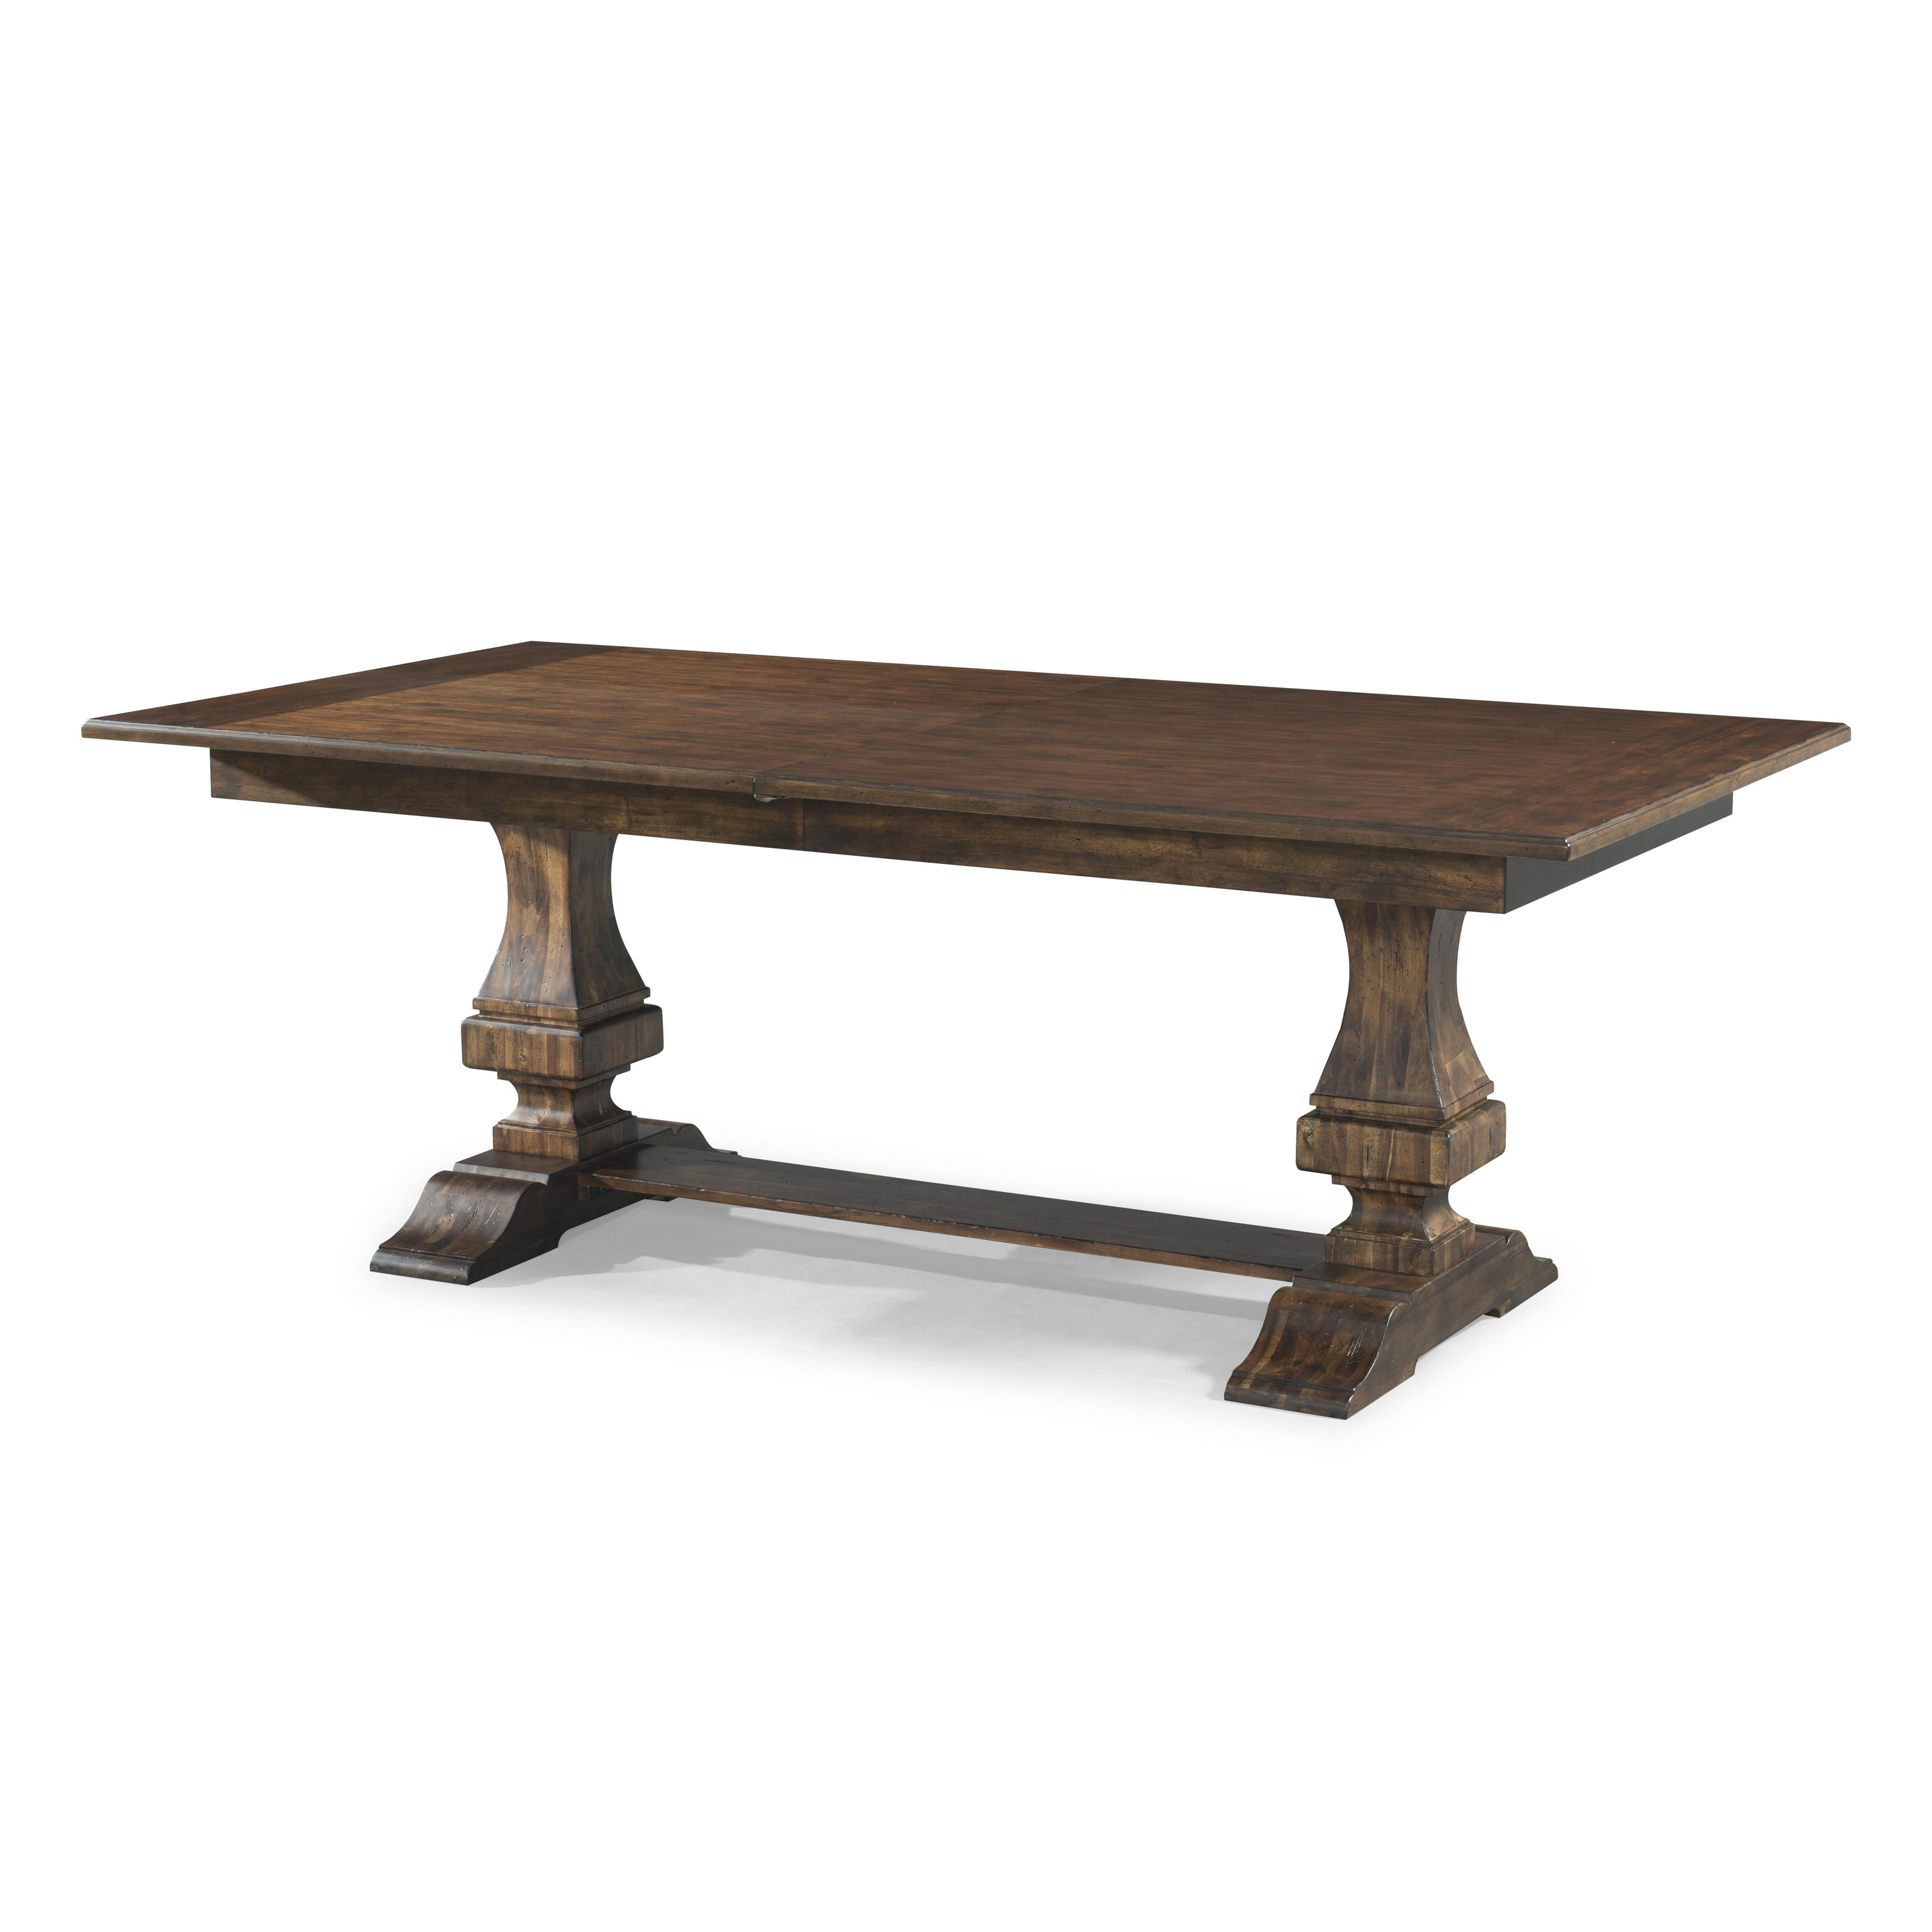 Trisha 39 s trestle table with 18 inch leaf by trisha for Home collection furniture